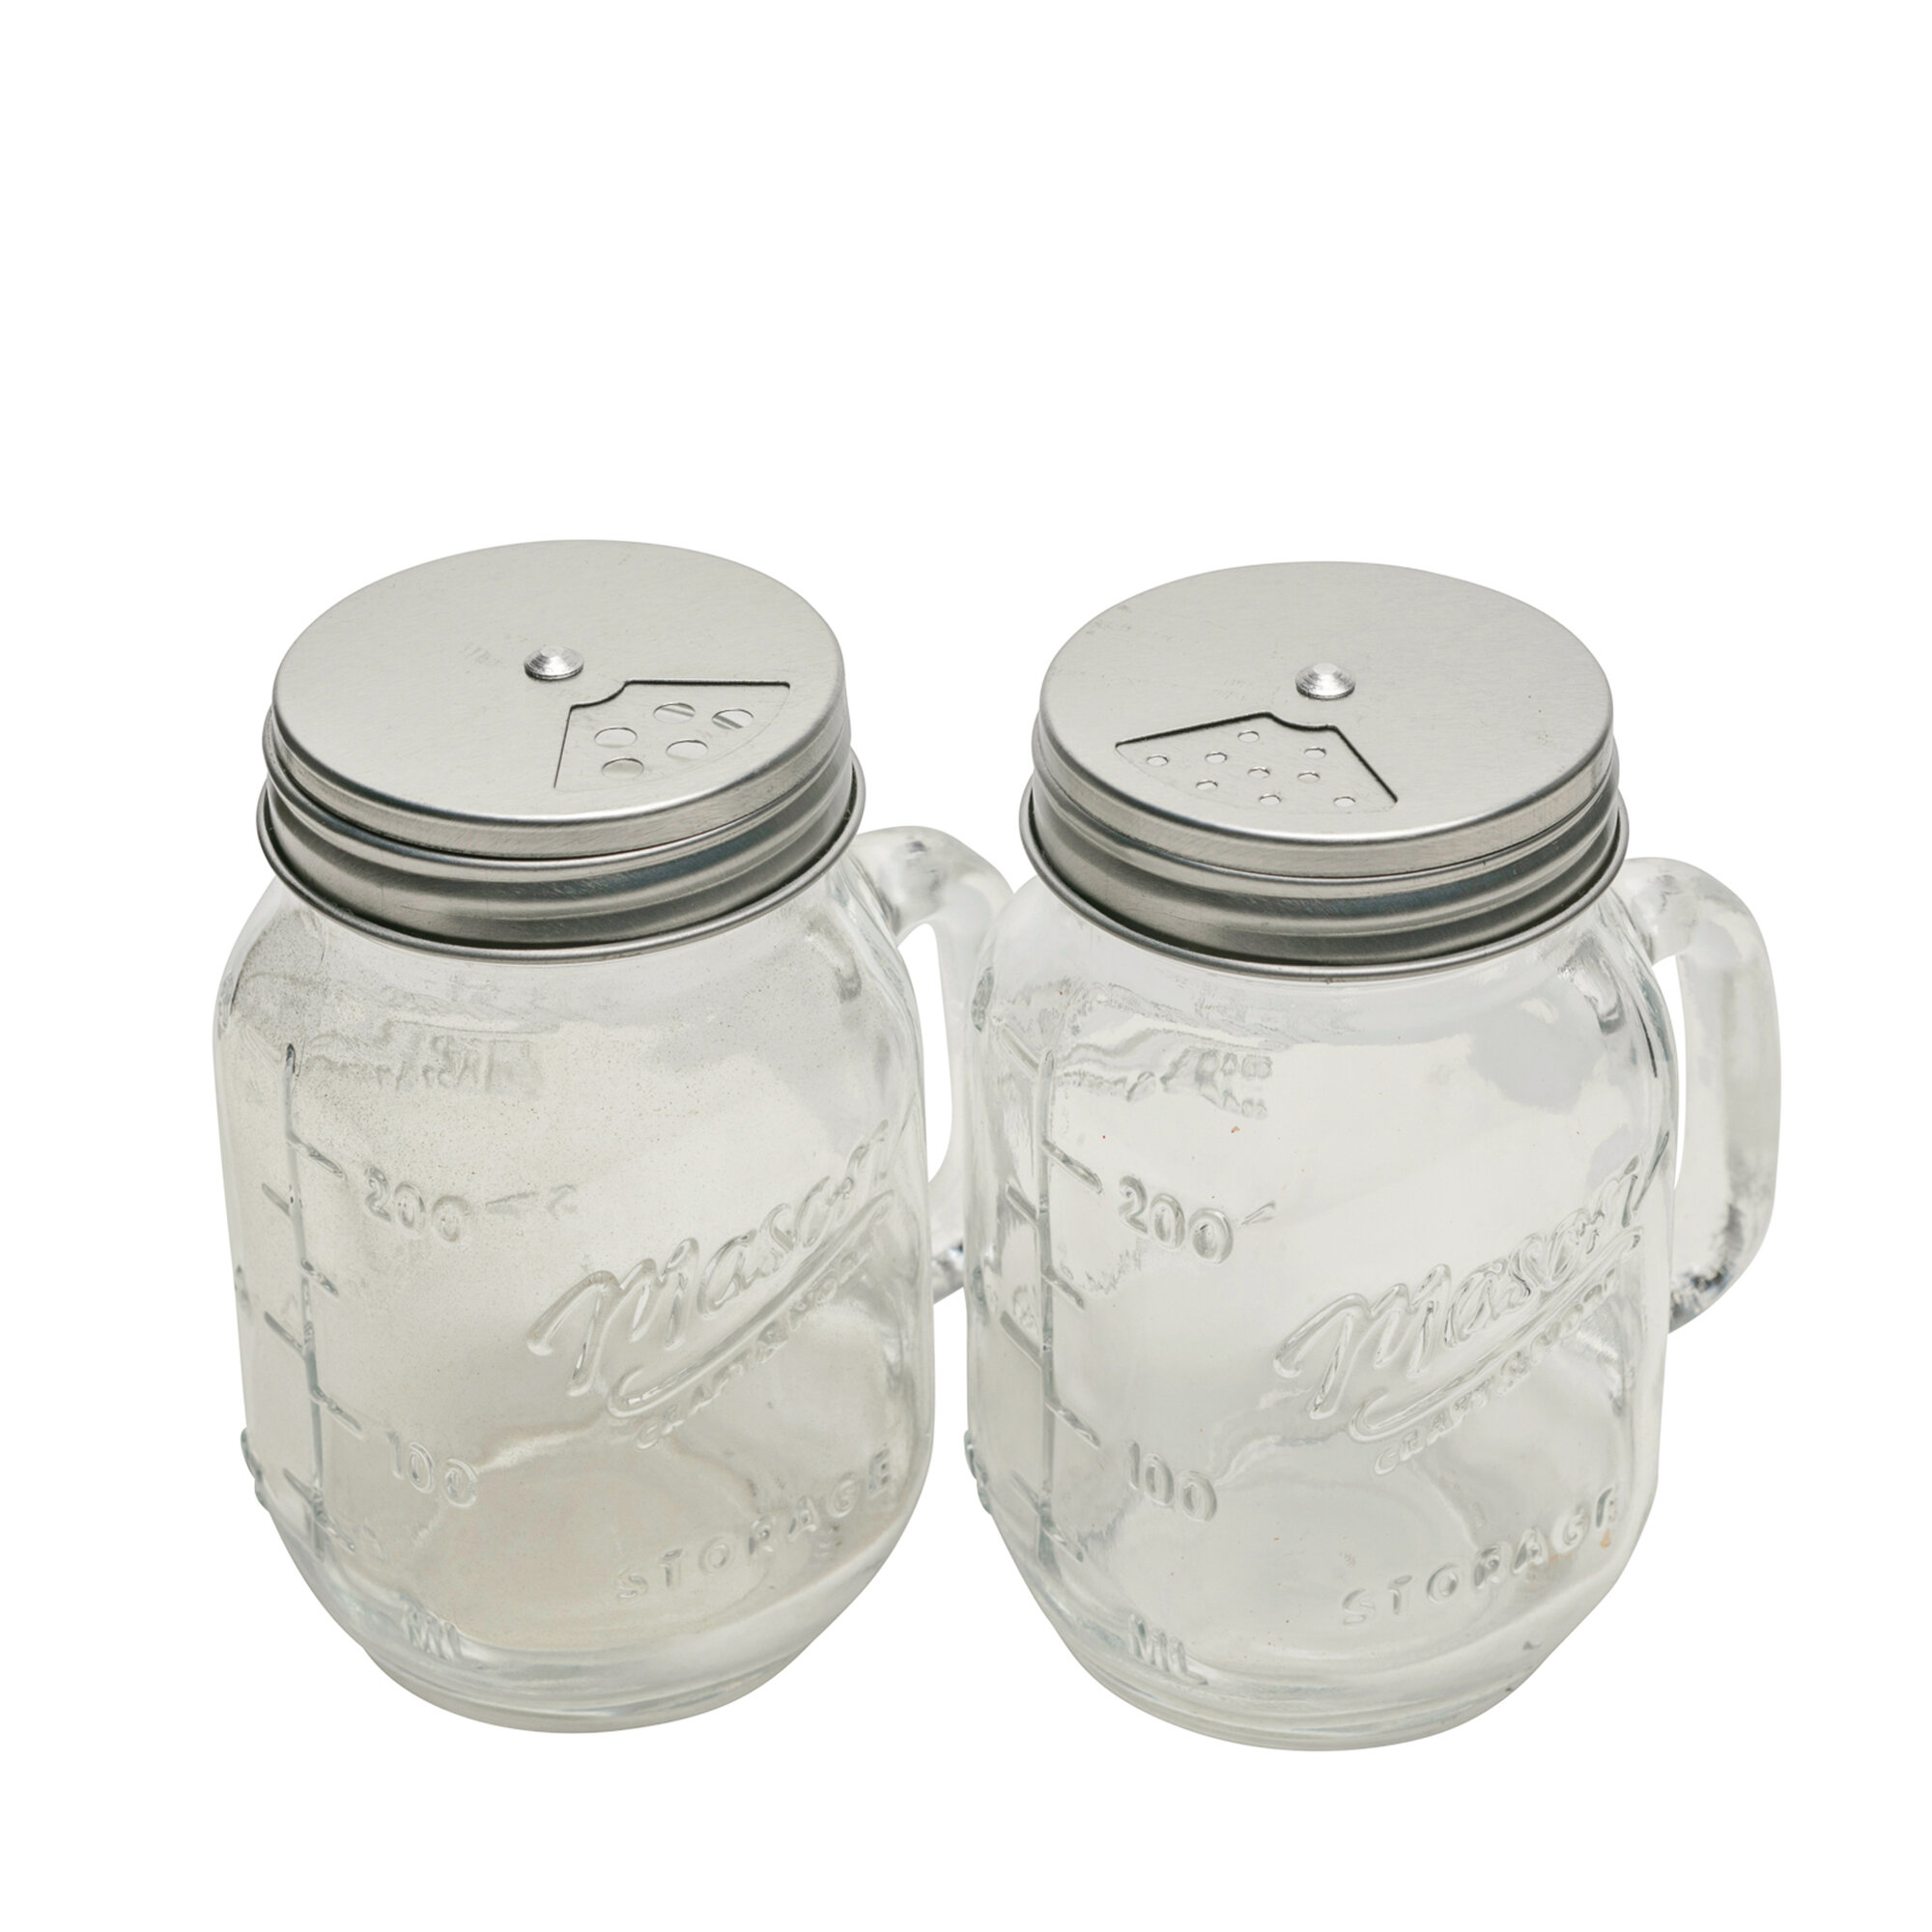 8 Oz Glass Salt & Pepper Shaker Set